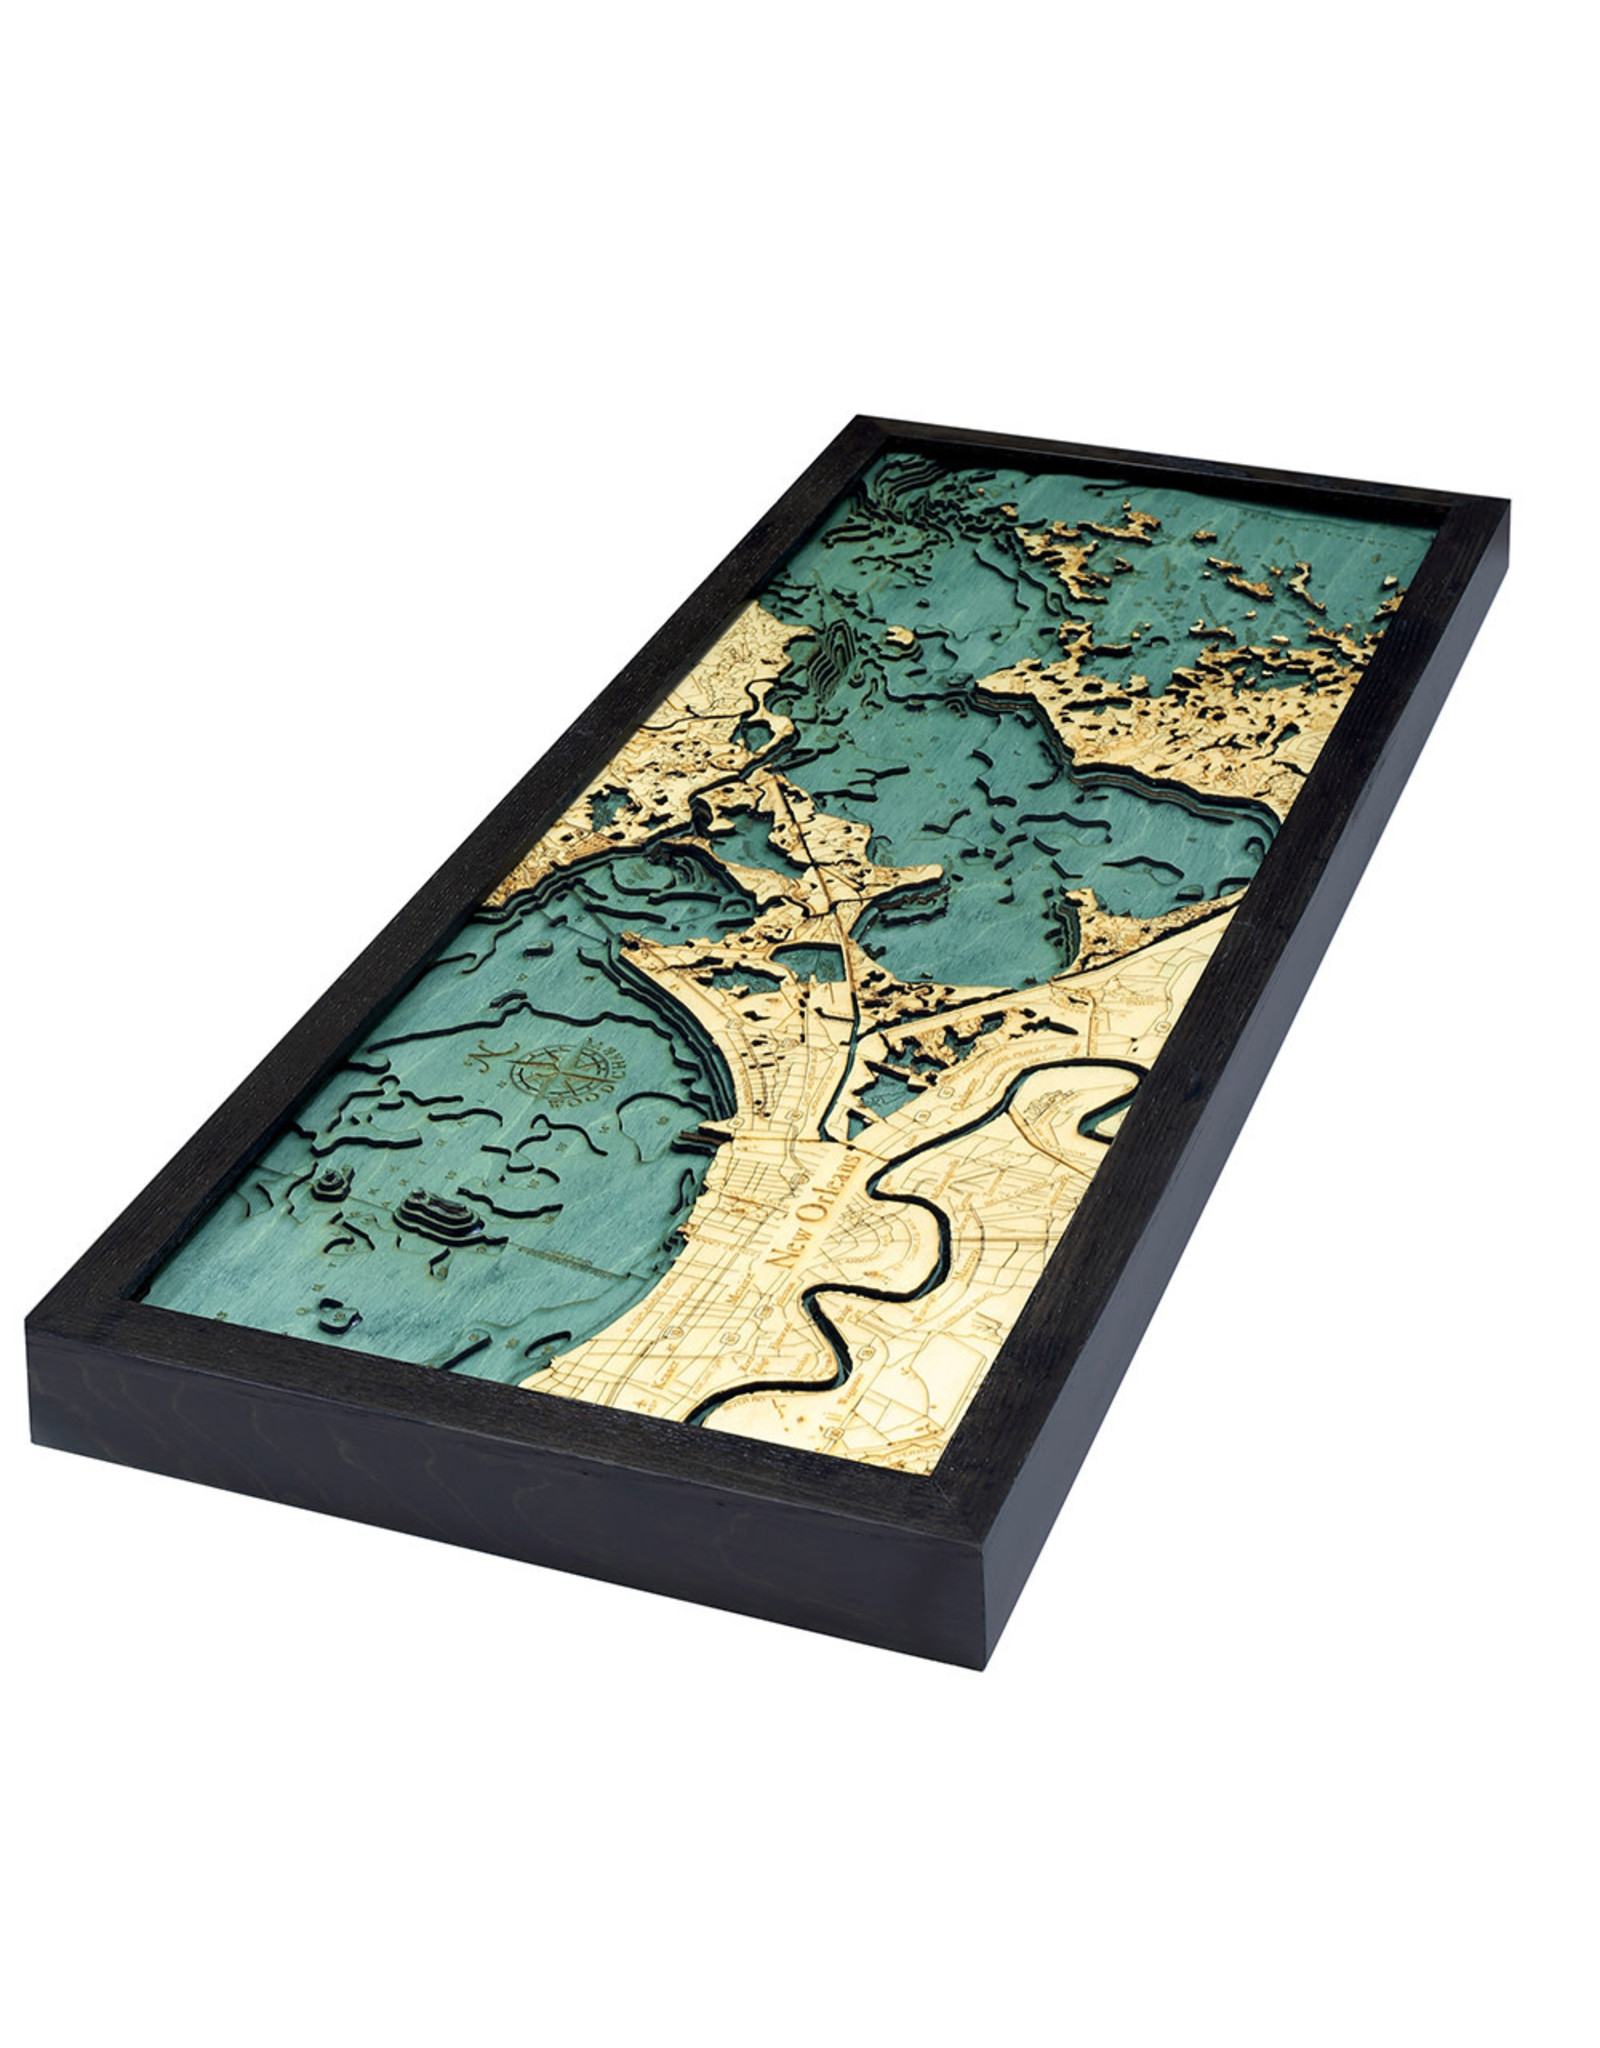 WoodCharts New Orleans (Bathymetric 3-D Wood Carved Nautical Chart)